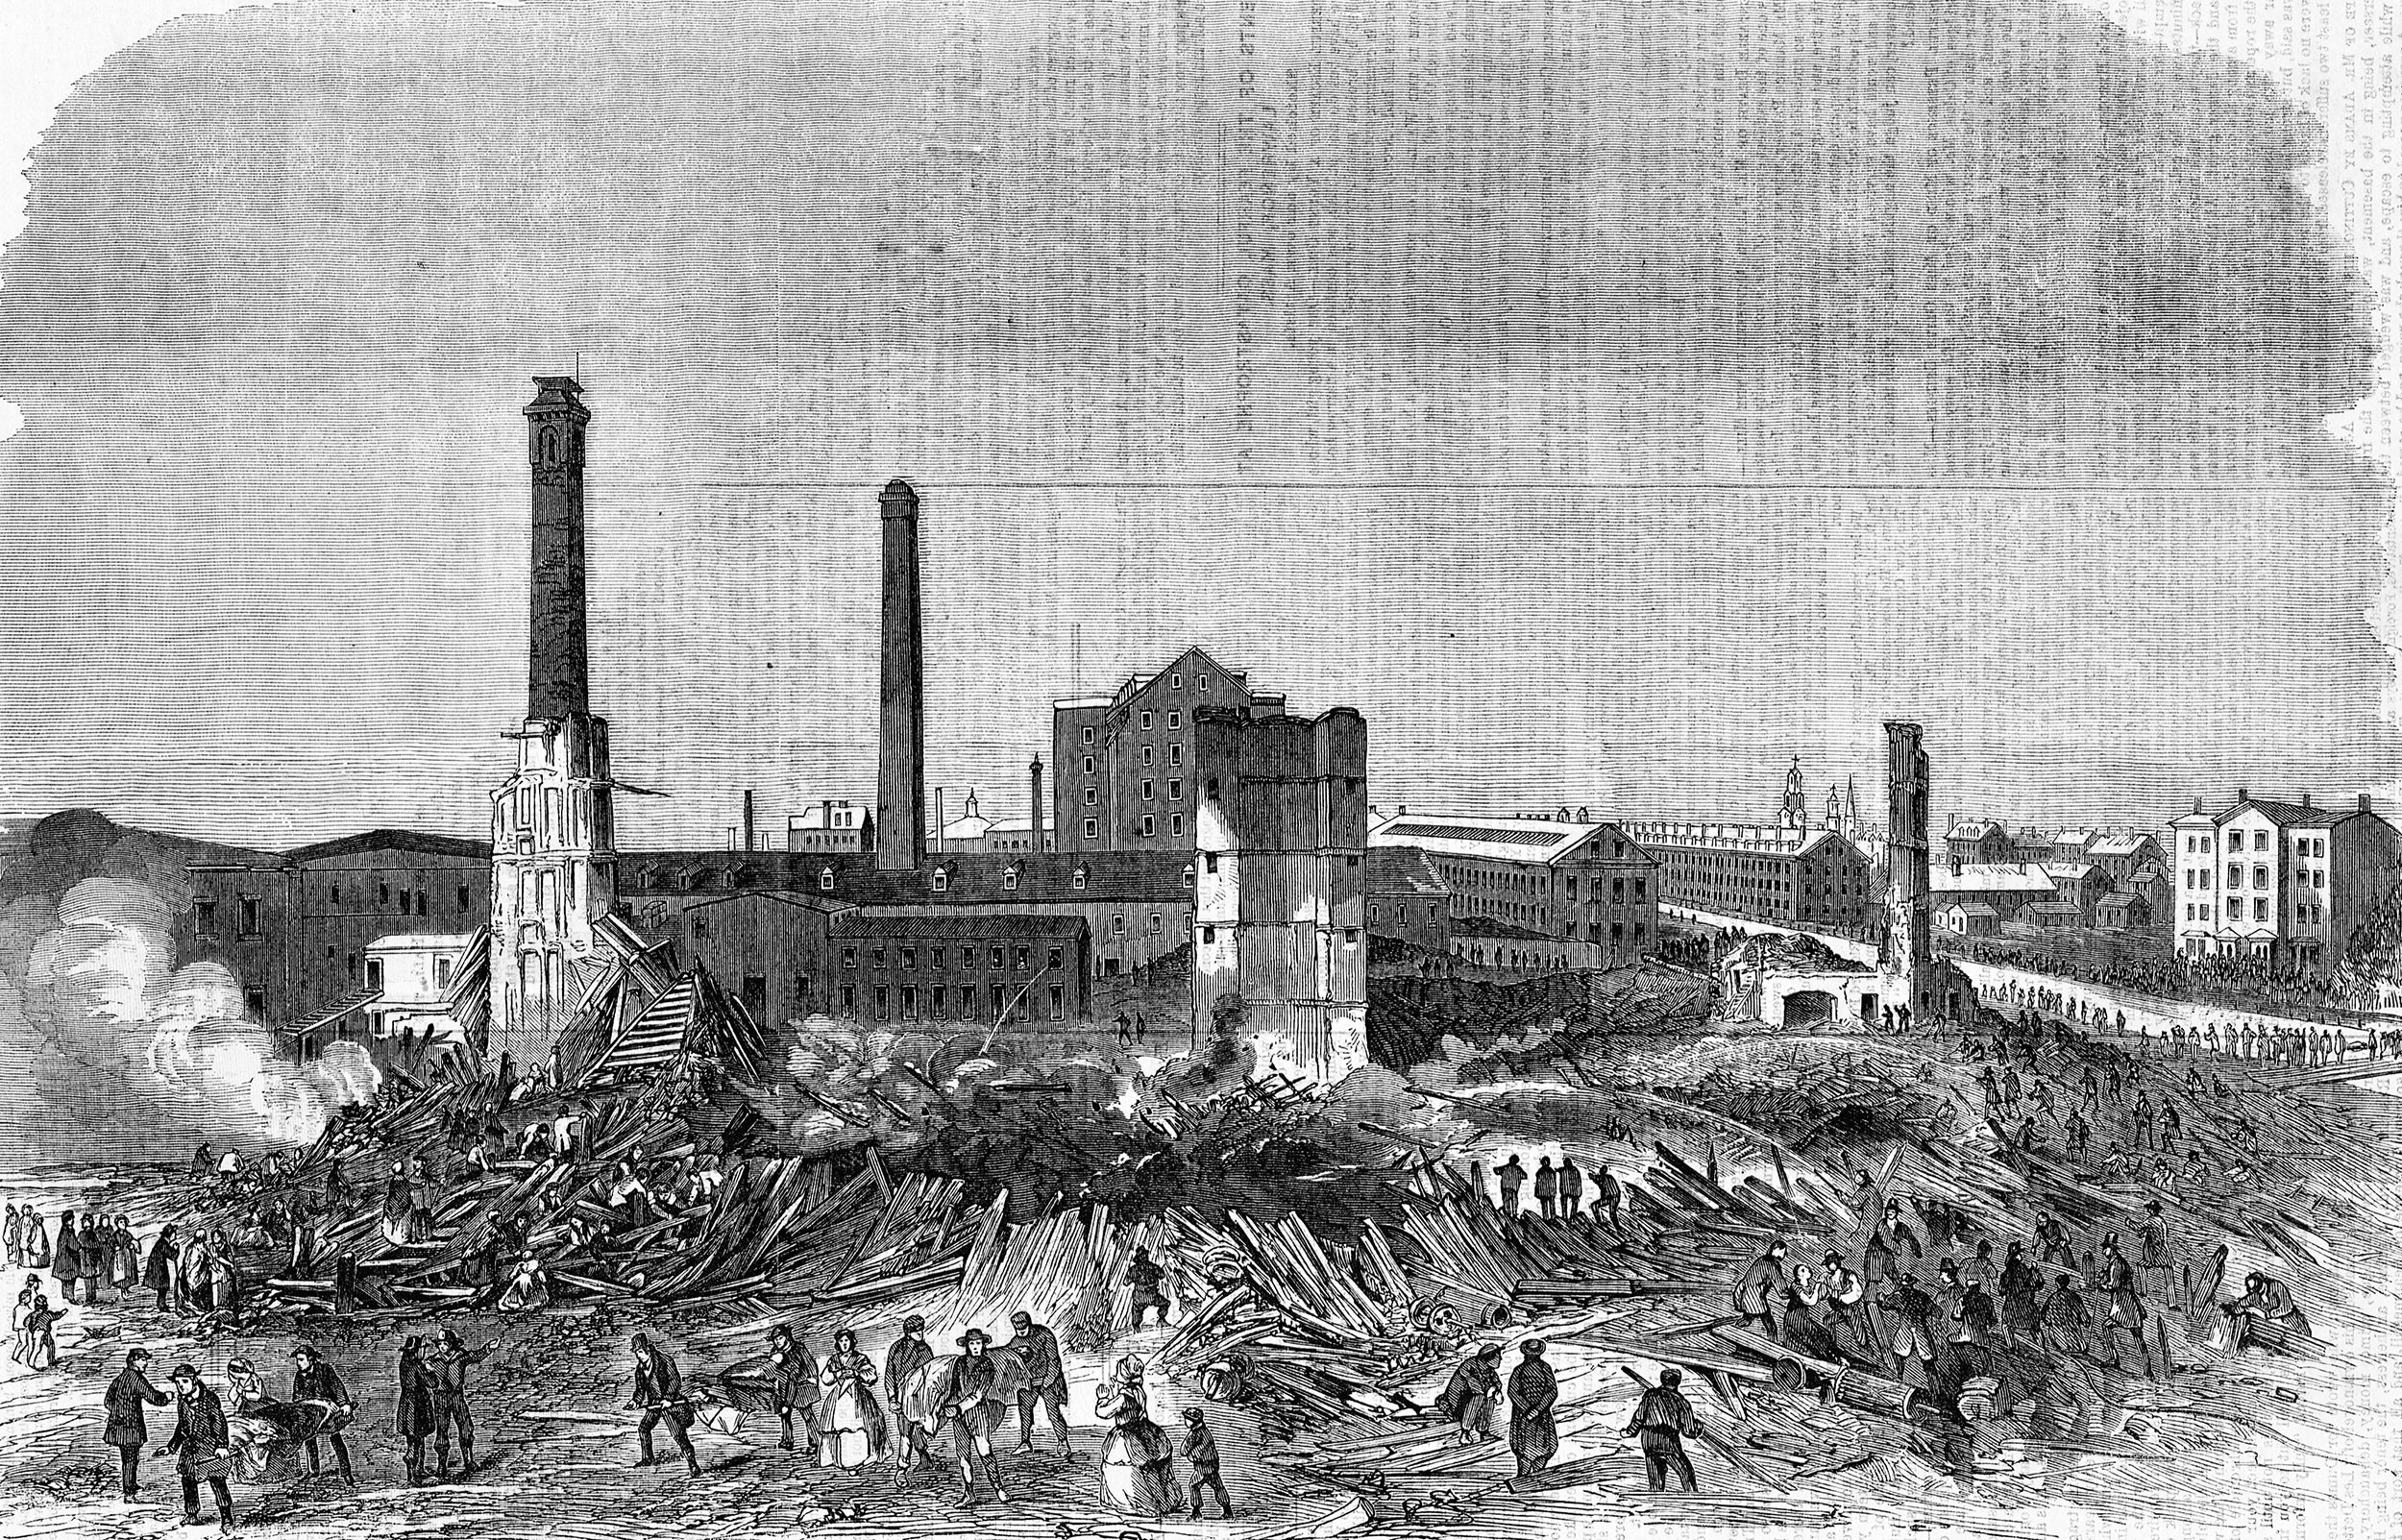 This tragic mill collapse killed mostly women, after industrialists